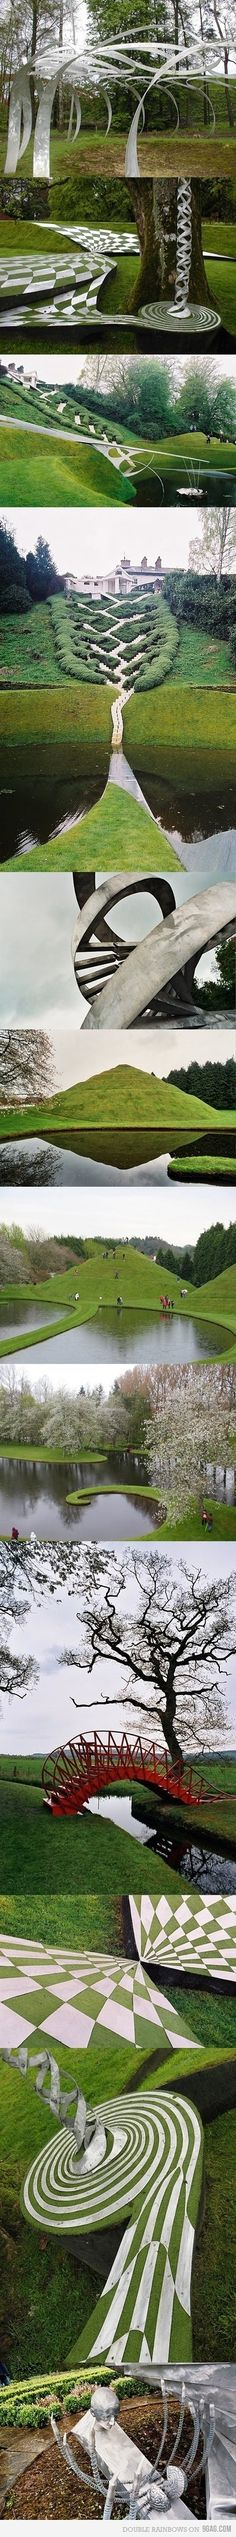 The Garden of Cosmic Speculation (Scotland) i think i'll add this to my list of places to go